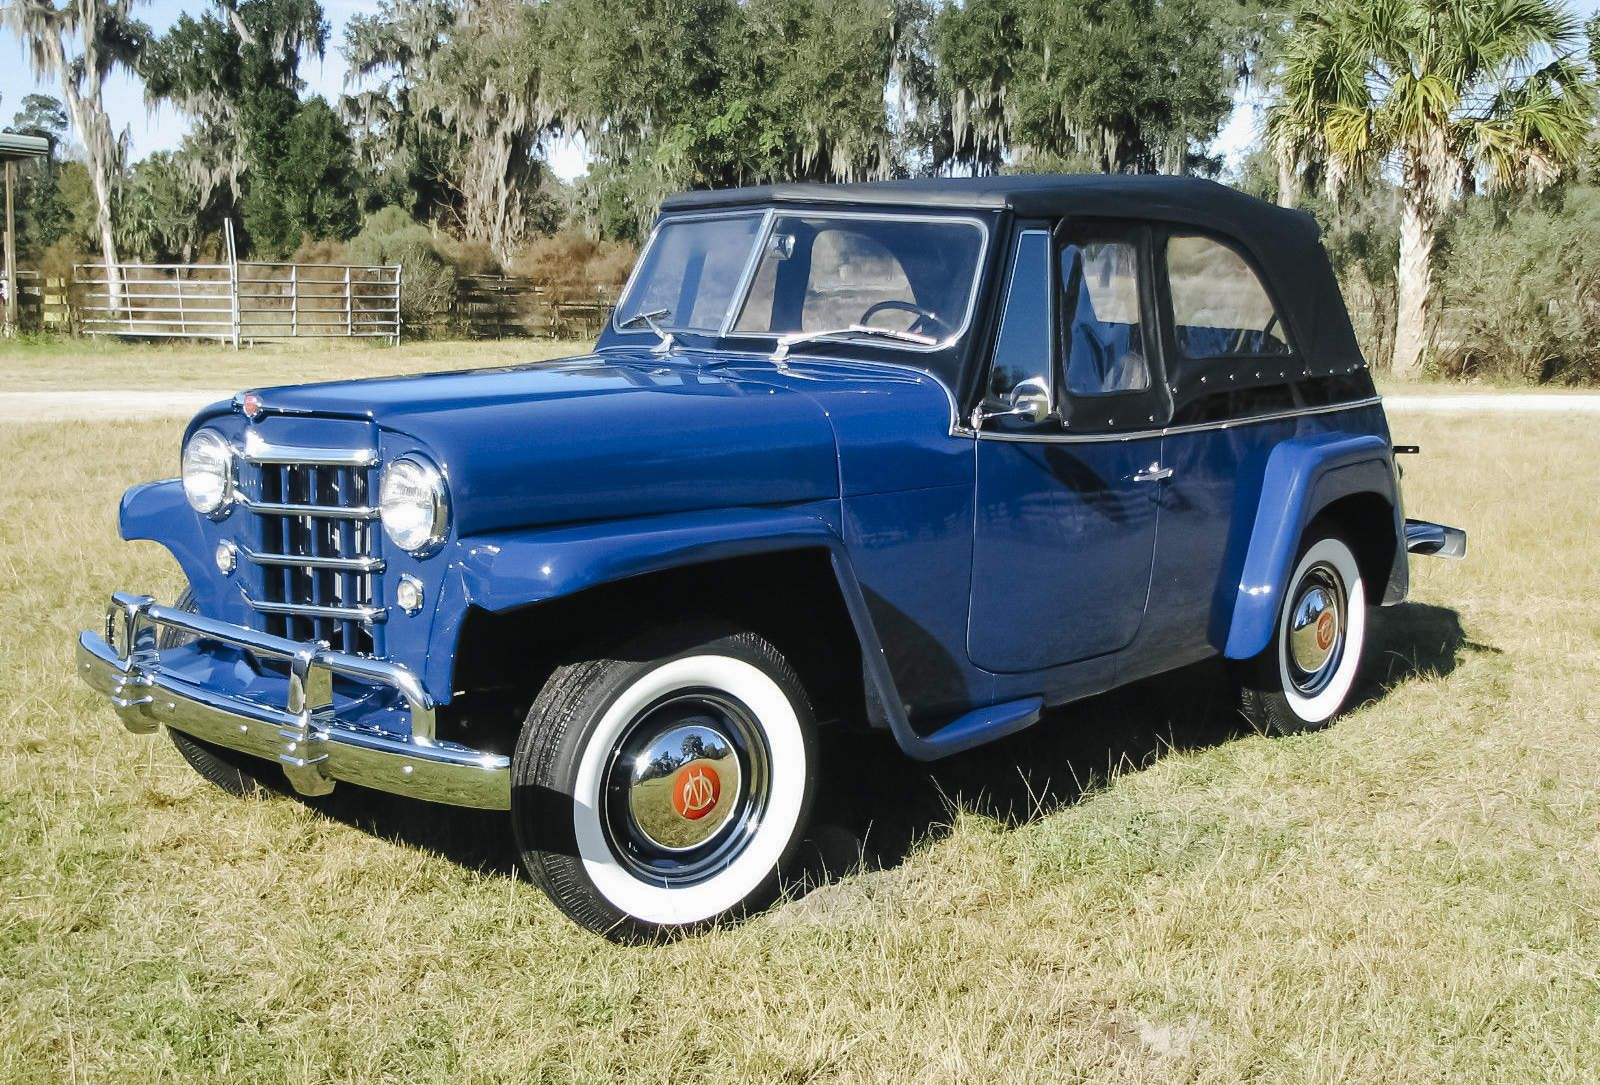 7 Of The Most Pristine Classic Cars For Sale On eBay | Jeeps ...